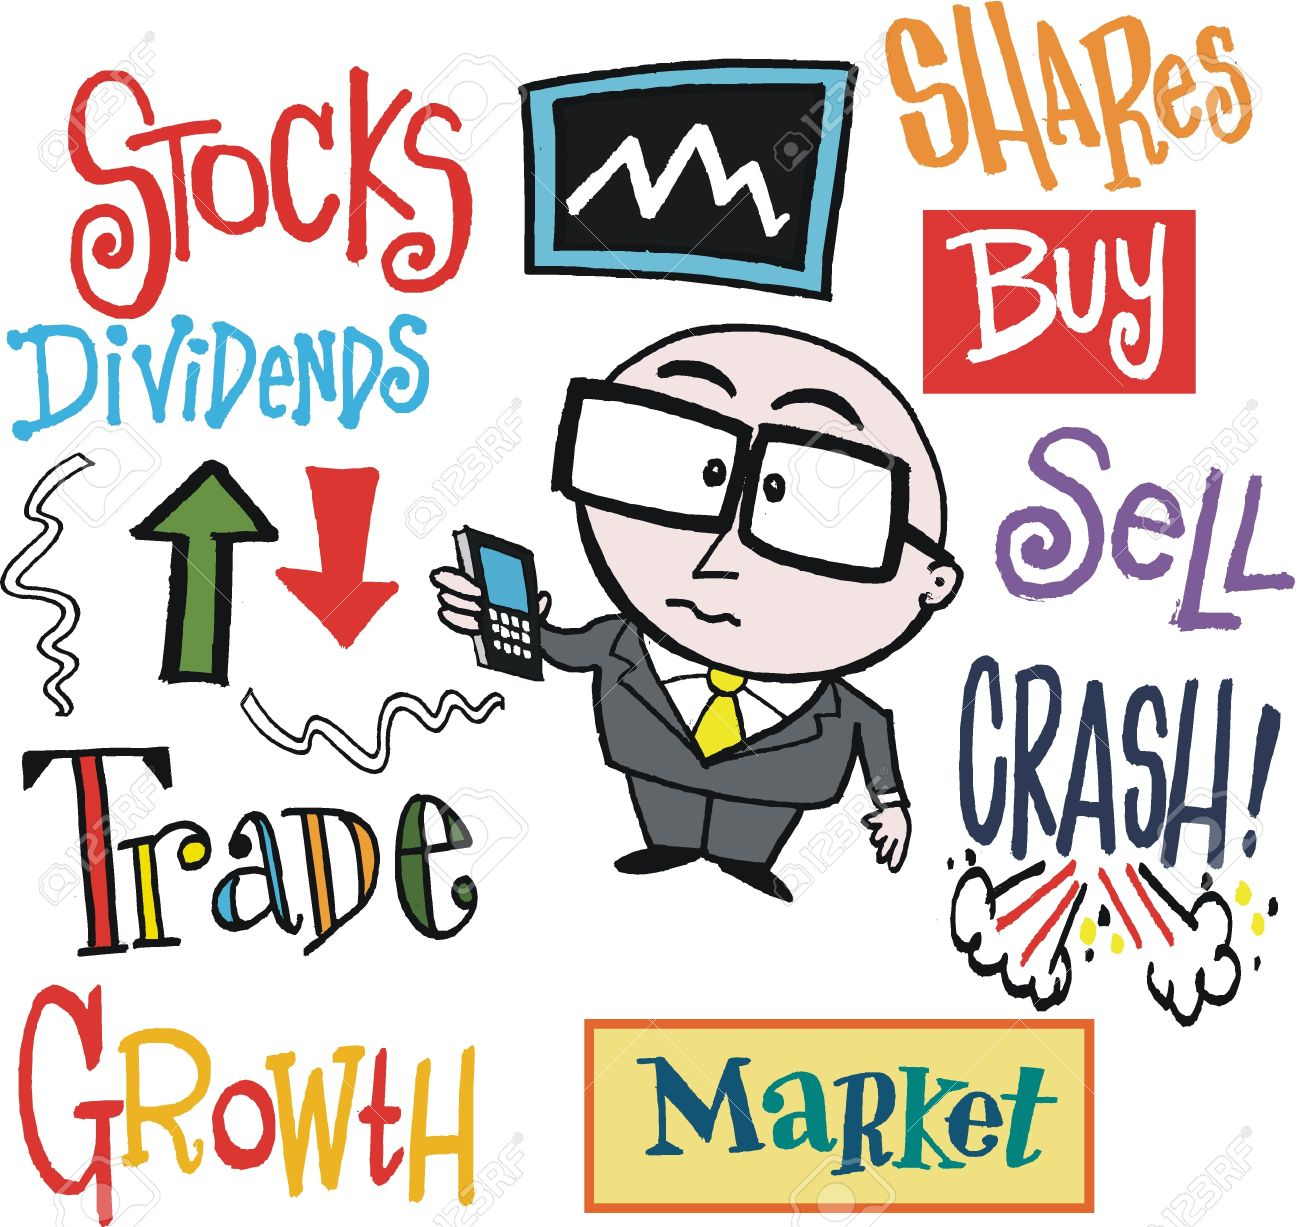 Clipart stock exchange graphic free download Stock exchange clip art - ClipartFest graphic free download